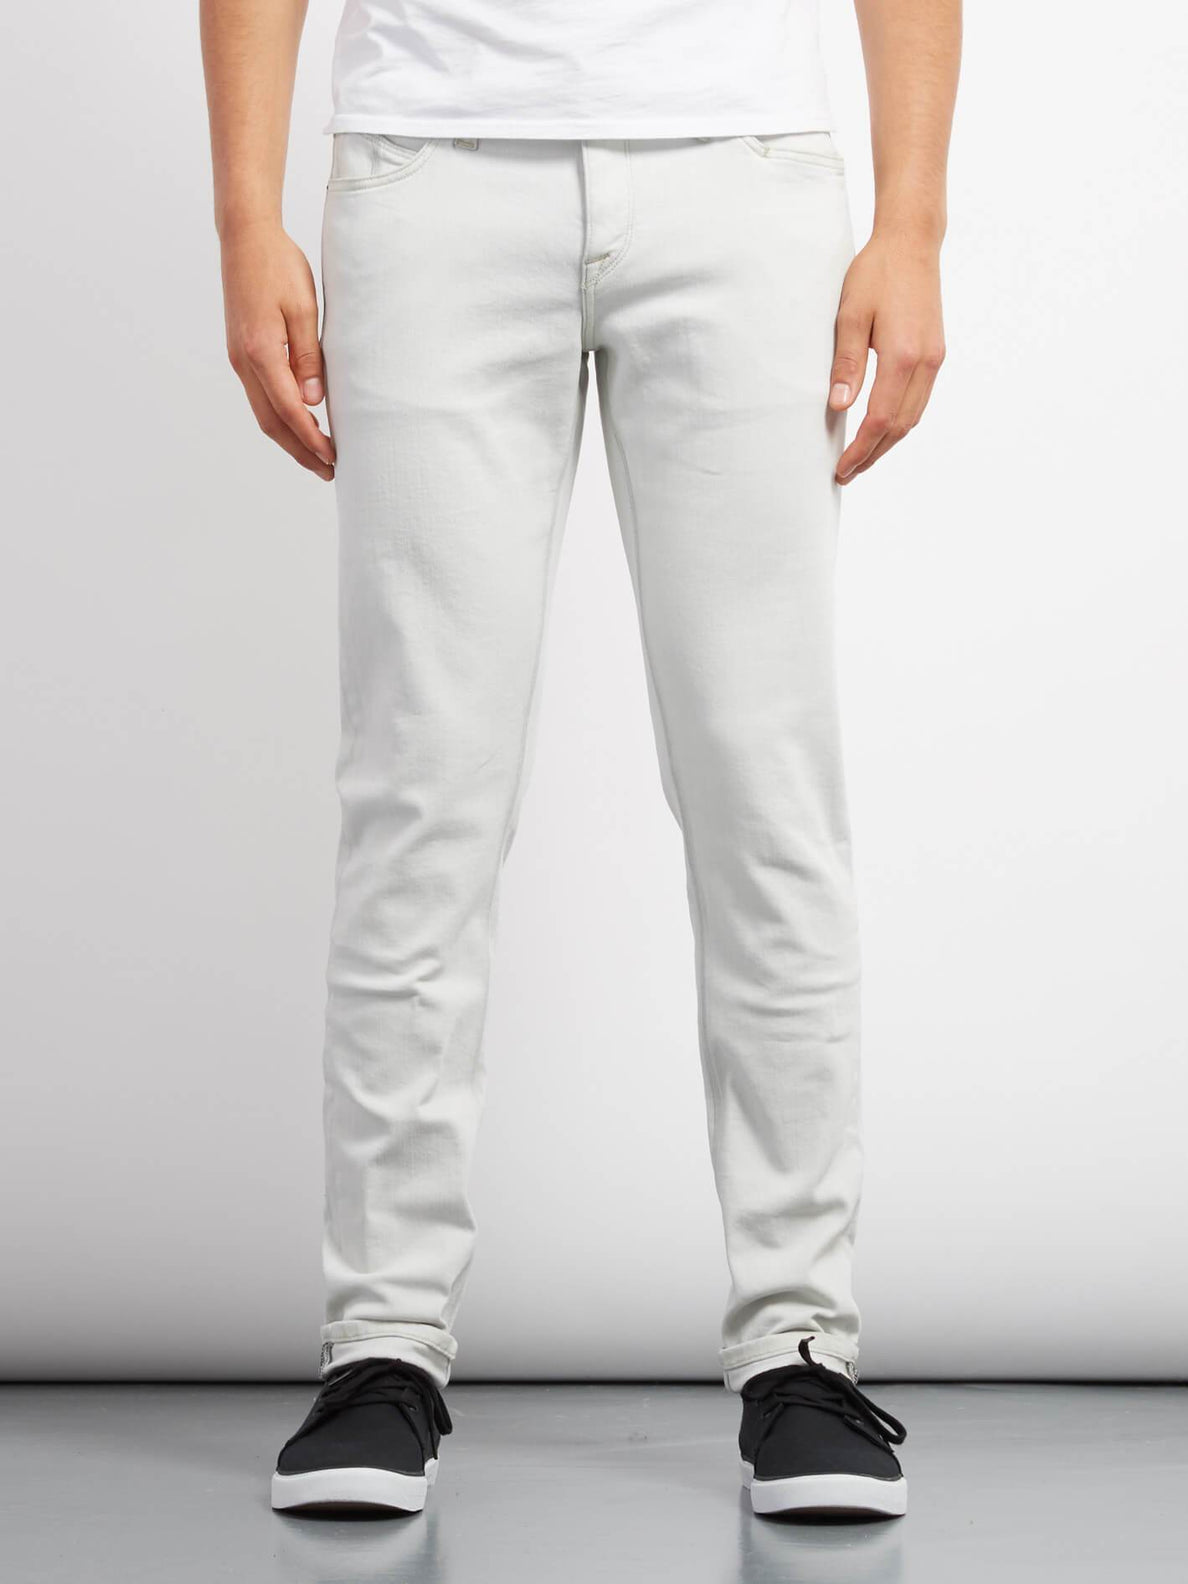 2X4 Tapered Jeans - Dirty White